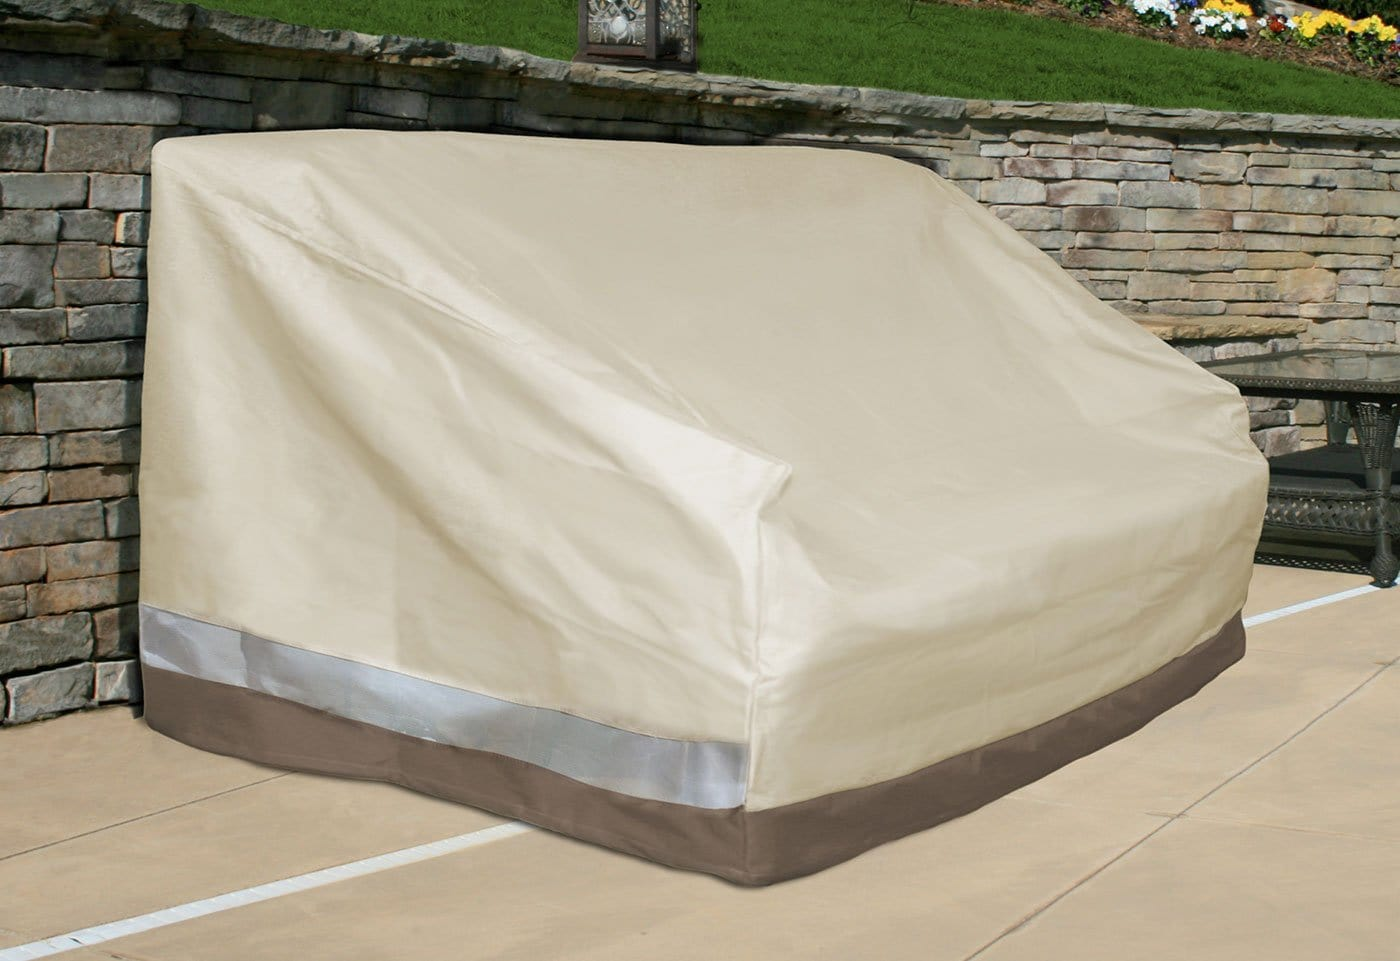 Patio Armor Bench Outdoor Furniture Cover - Taupe / Taupe